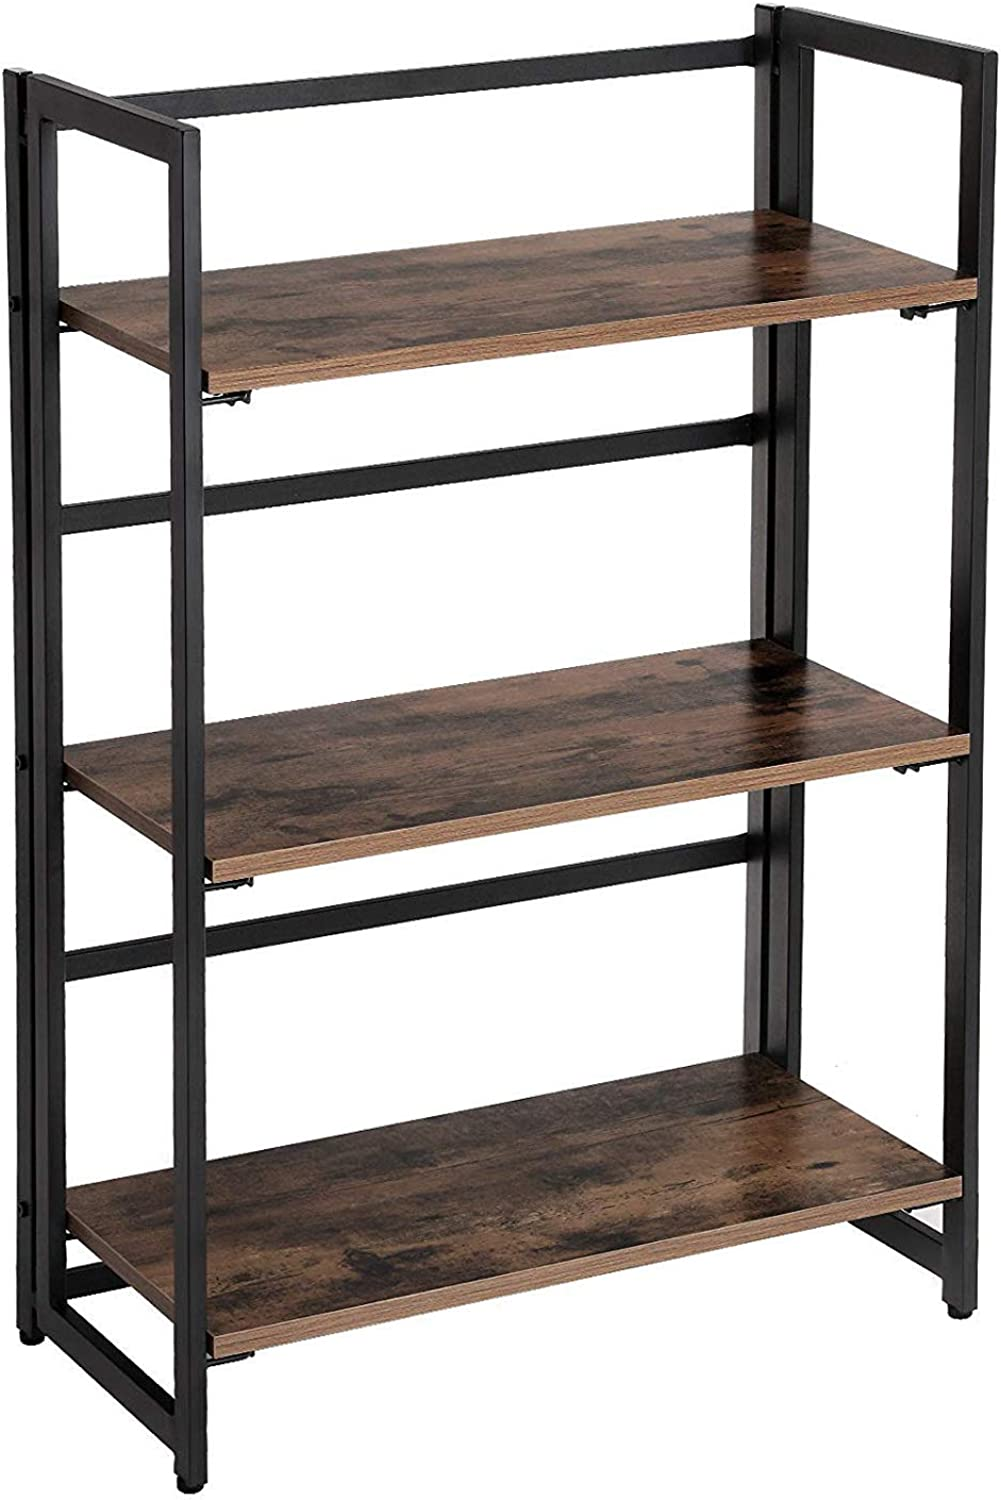 Benjara Metal Framed Ladder Style Folding Bookcase with Three Wooden Shelves, Brown Black